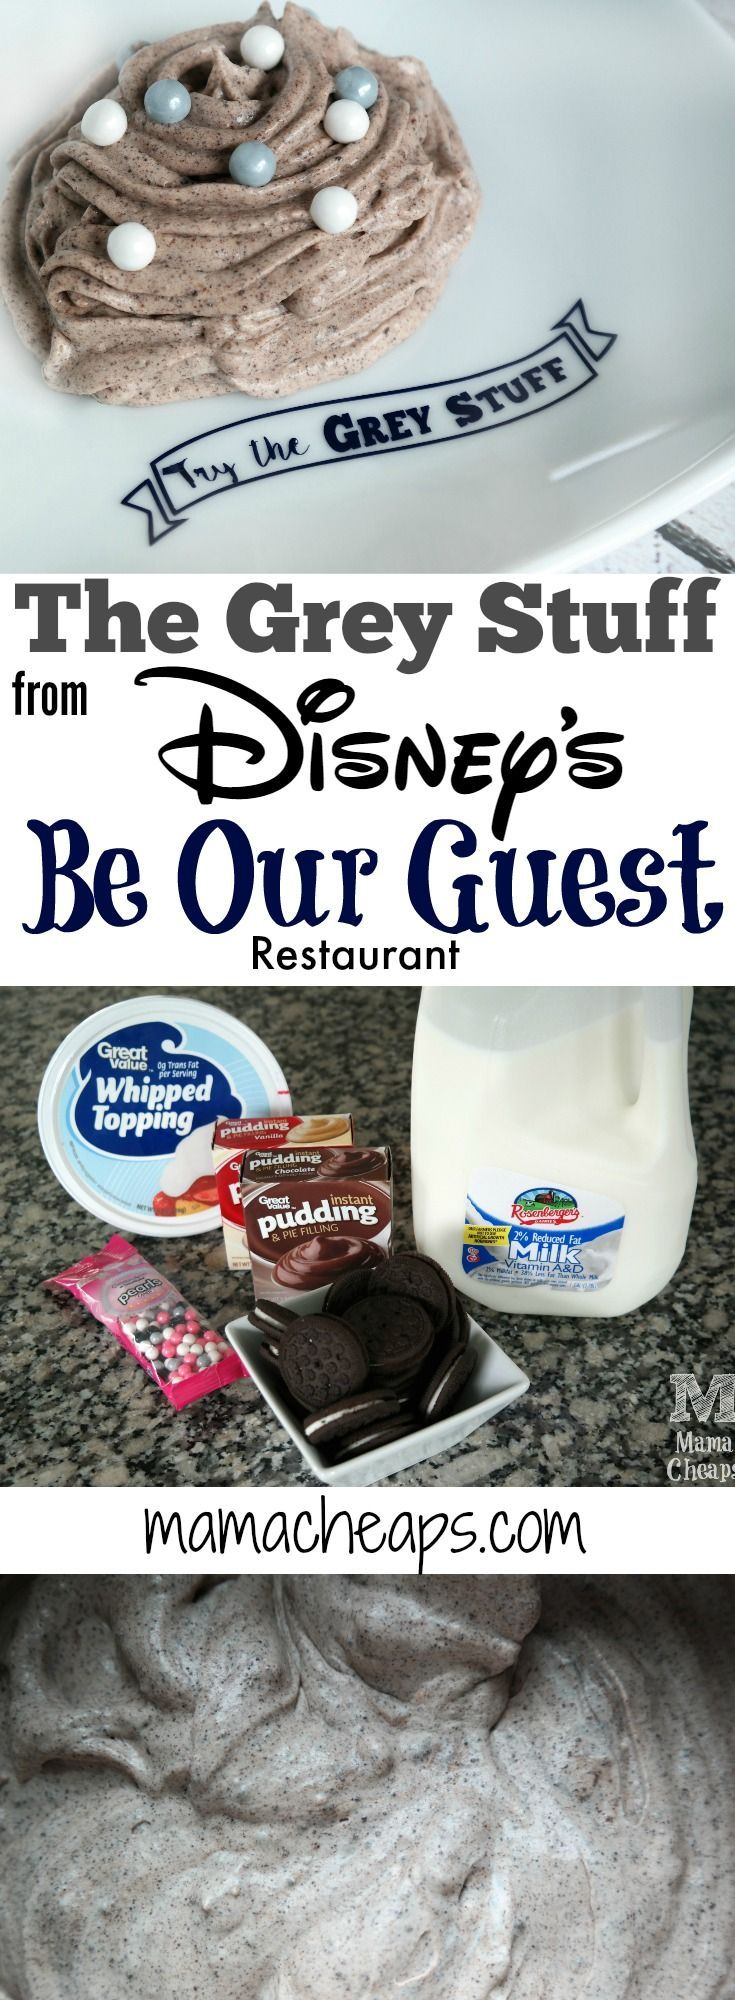 How to Make The Grey Stuff from Disney's Be Our Guest Restaurant How to Make The Grey Stuff from Disney's Be Our Guest Restaurant Find more Disney fun on !